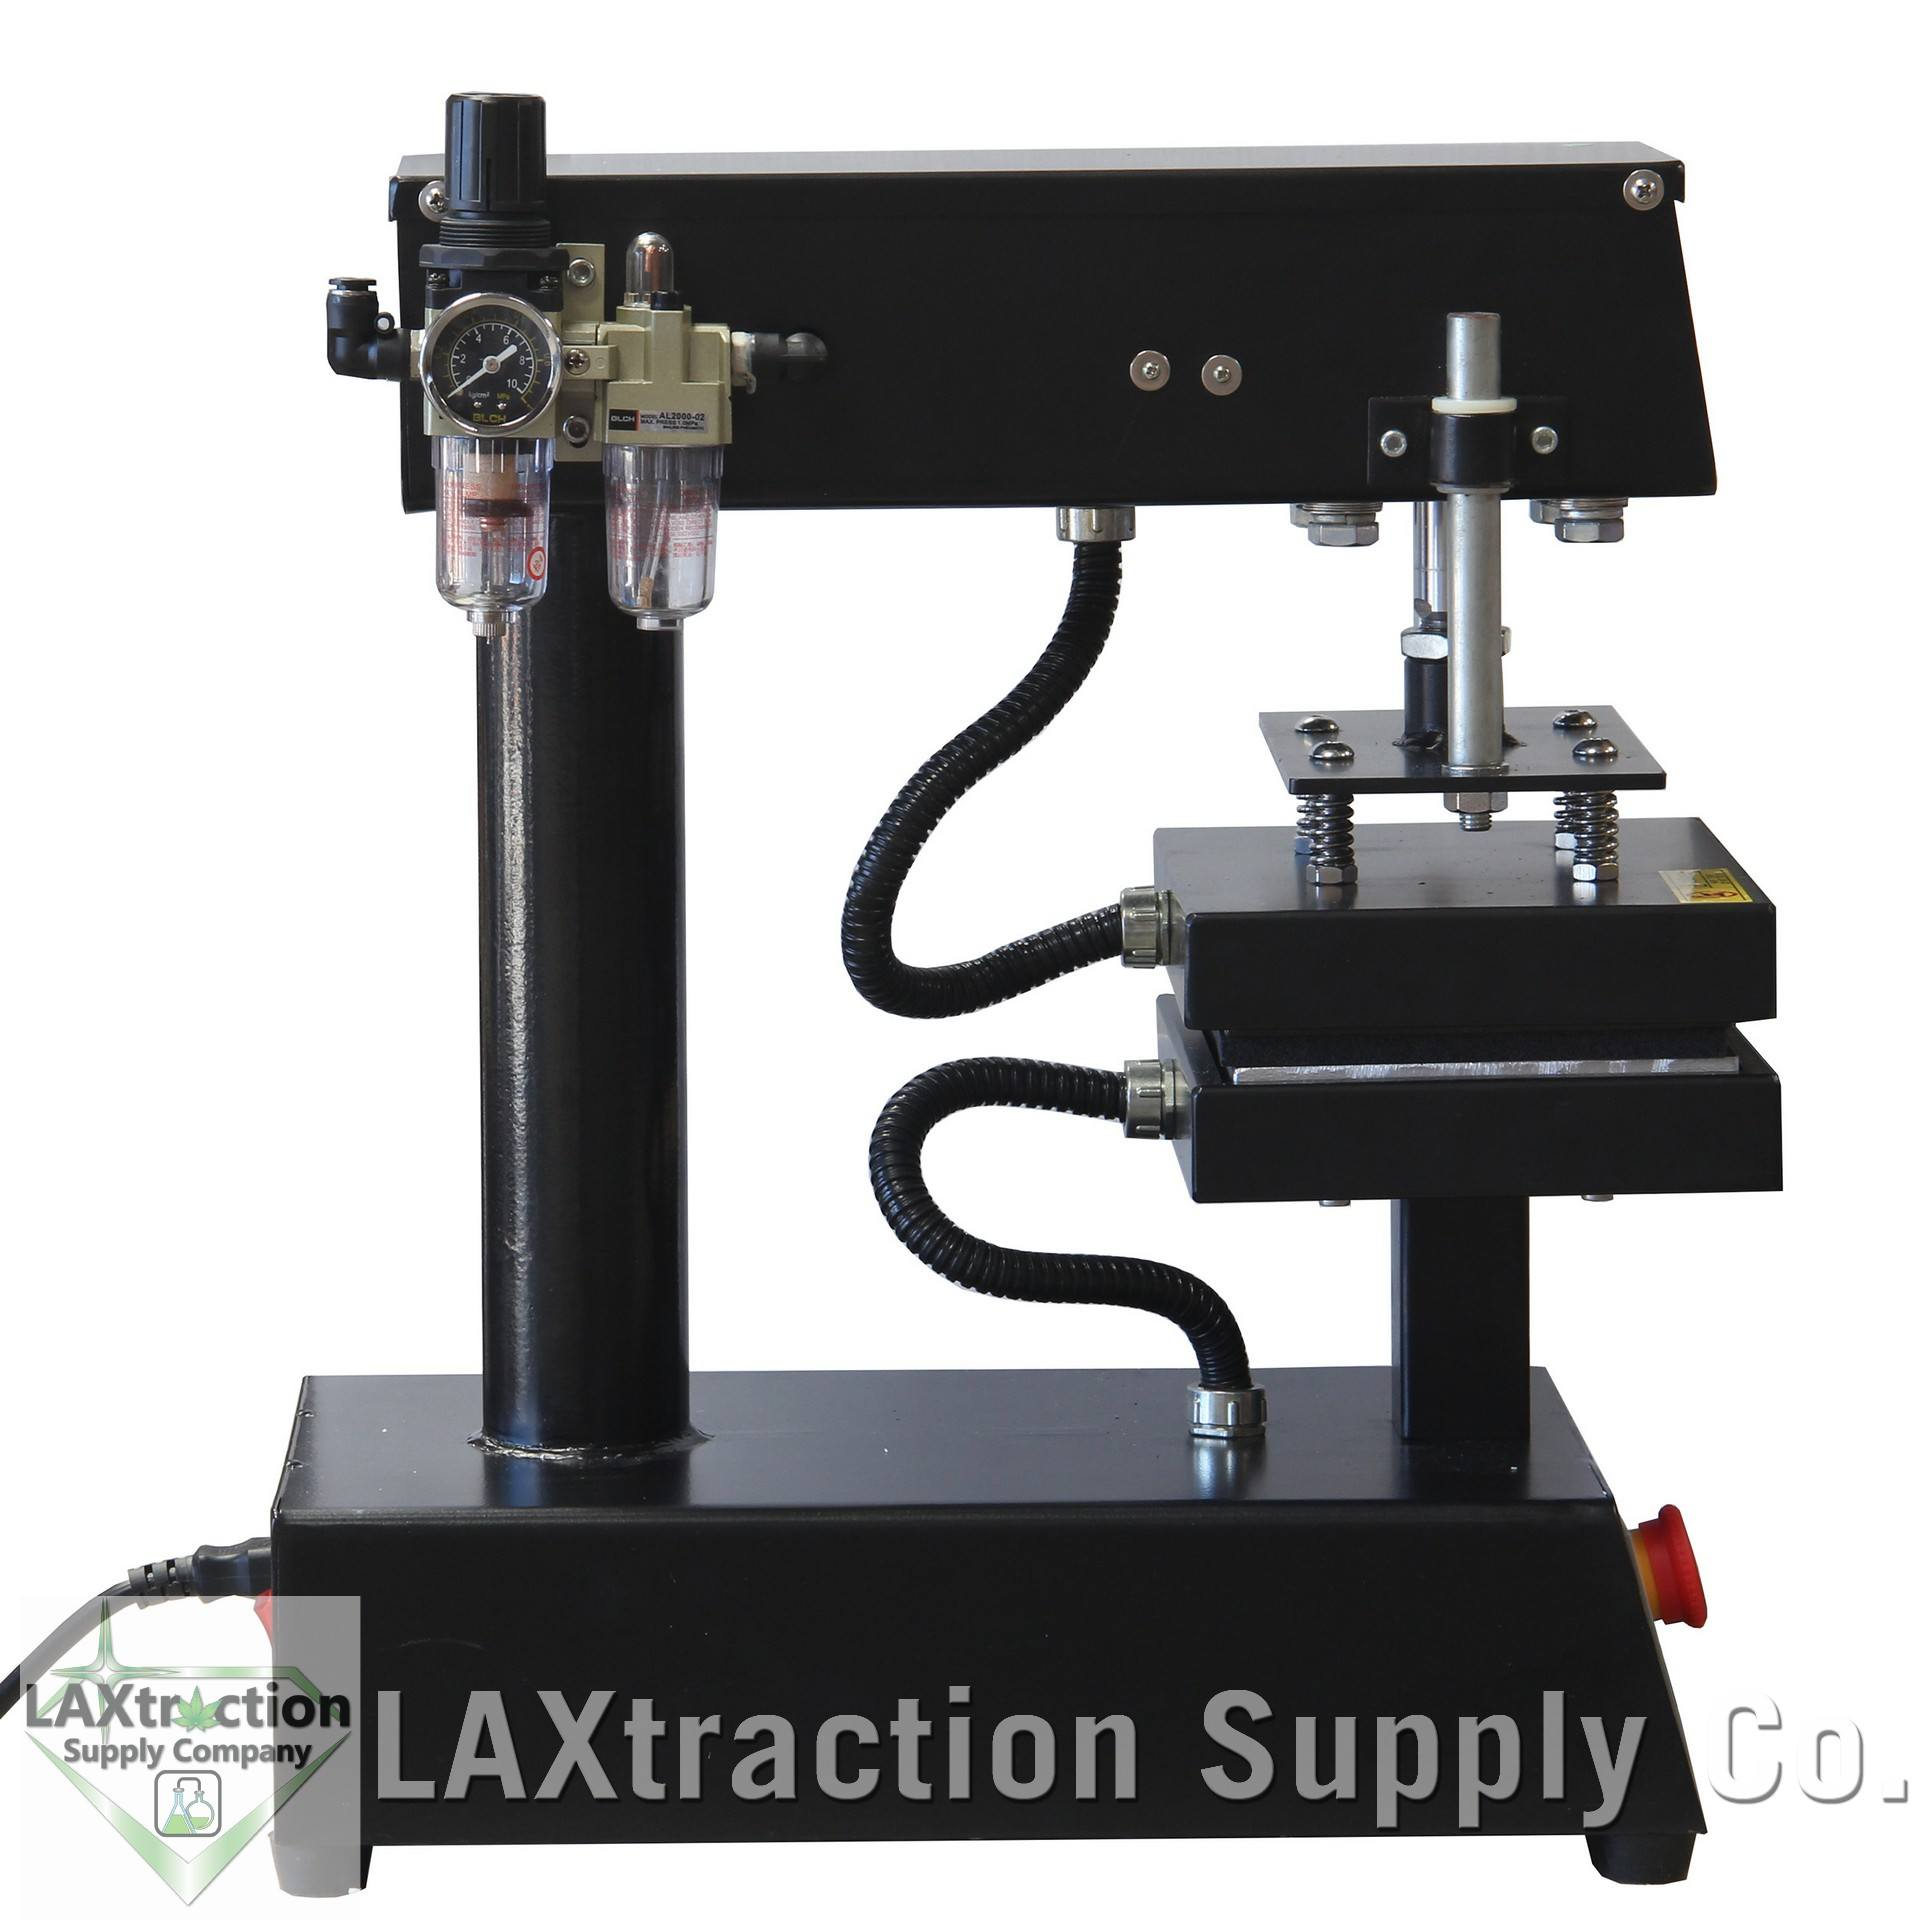 Sublimation Press Digital Pneumatic Heat Press 8x6 Rosin Sublimation Press